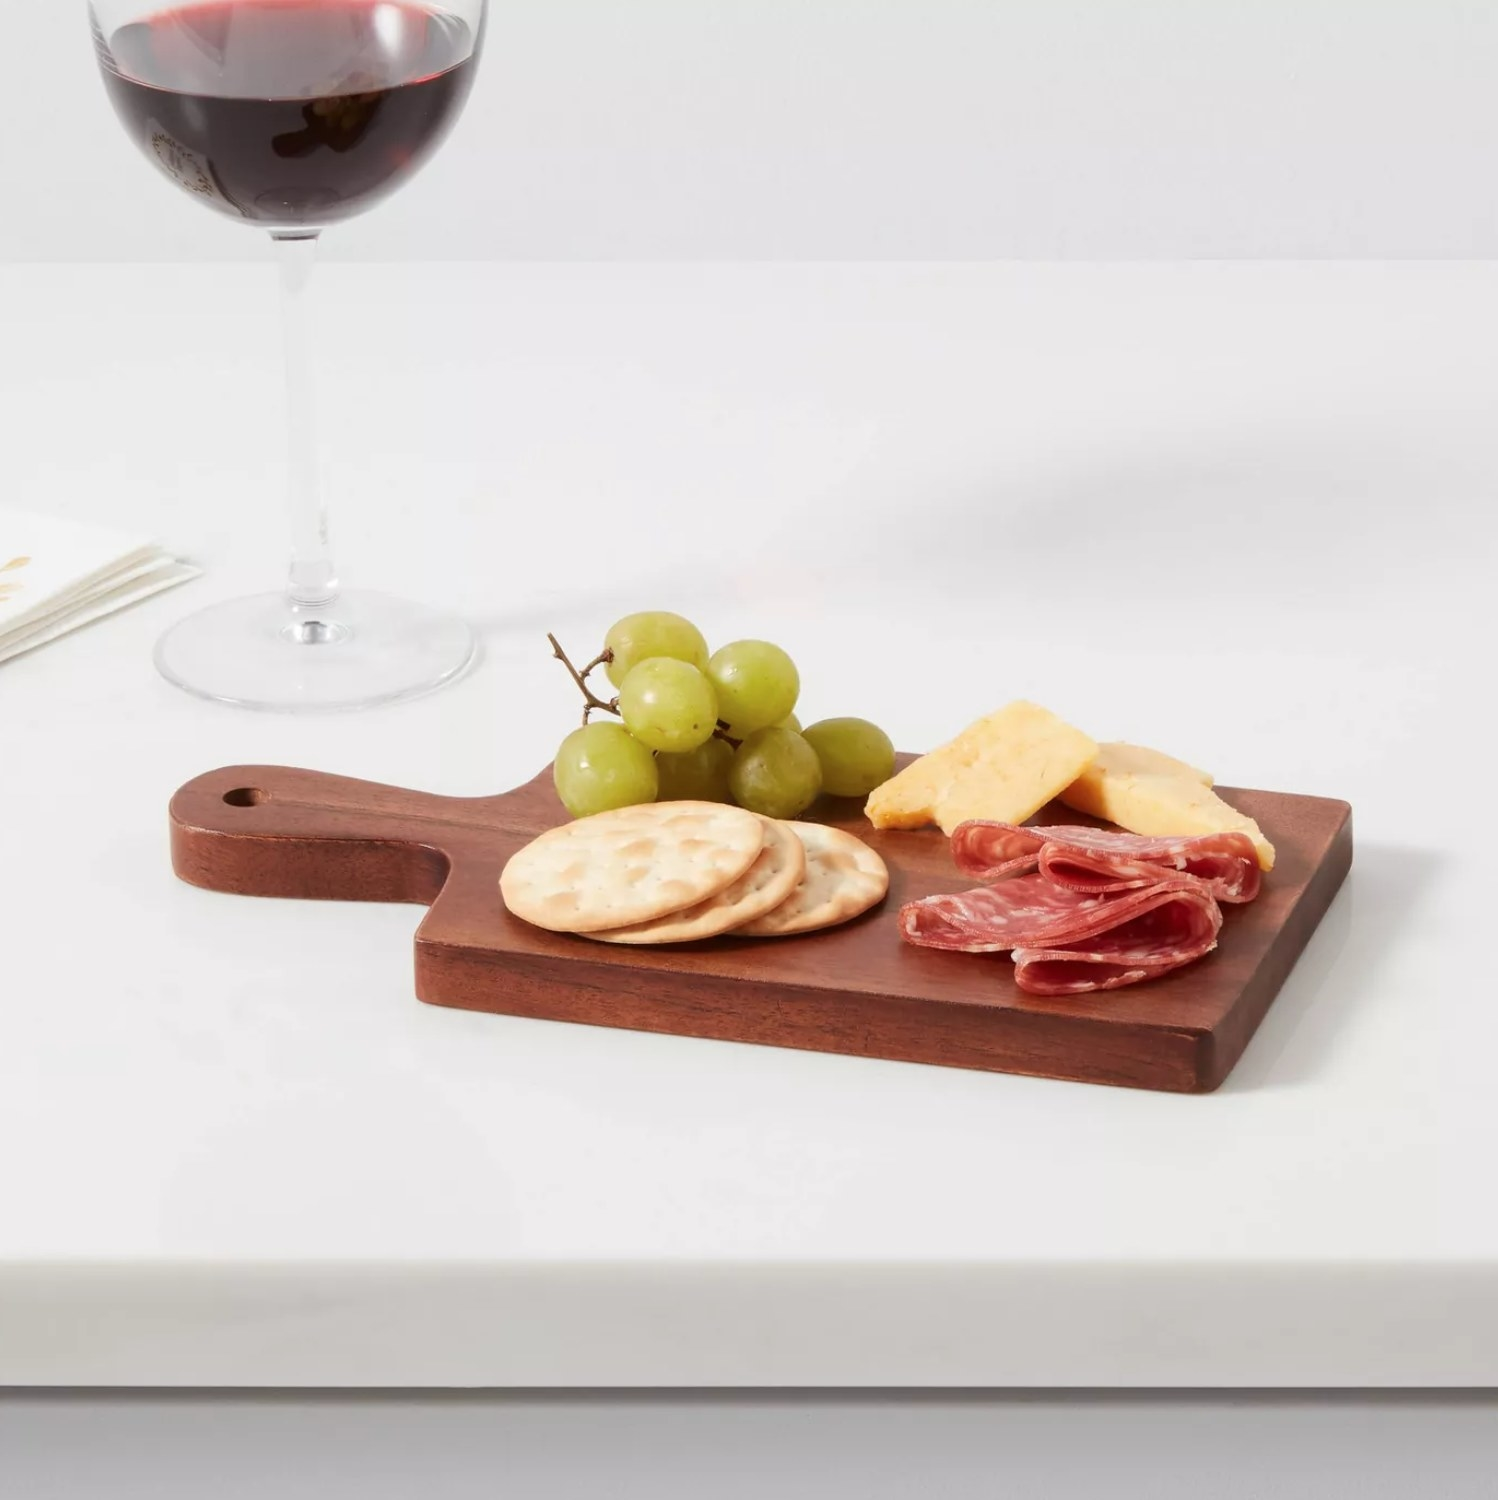 the brown tray with salami, cheese, crackers, and grapes on it next to a glass of red wine